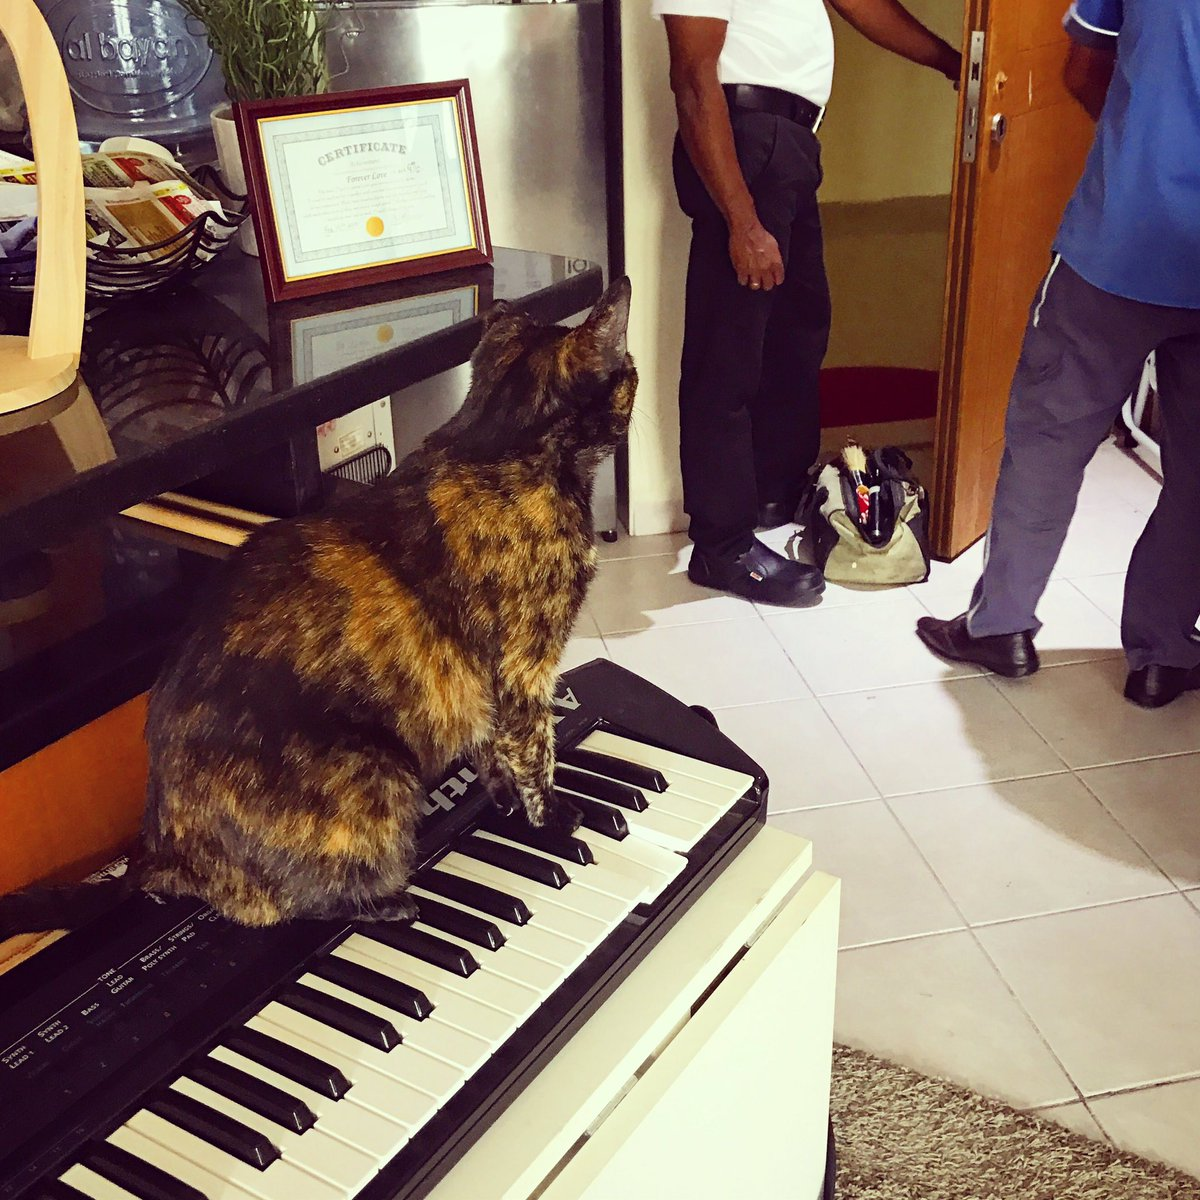 My lock is getting fixed and who&#39;s the bravest of my #cats ? My original rescue kitty #PrincessLeia standing watch on a @Roland_US Ax-Synth!<br>http://pic.twitter.com/5PvqvvUTxL